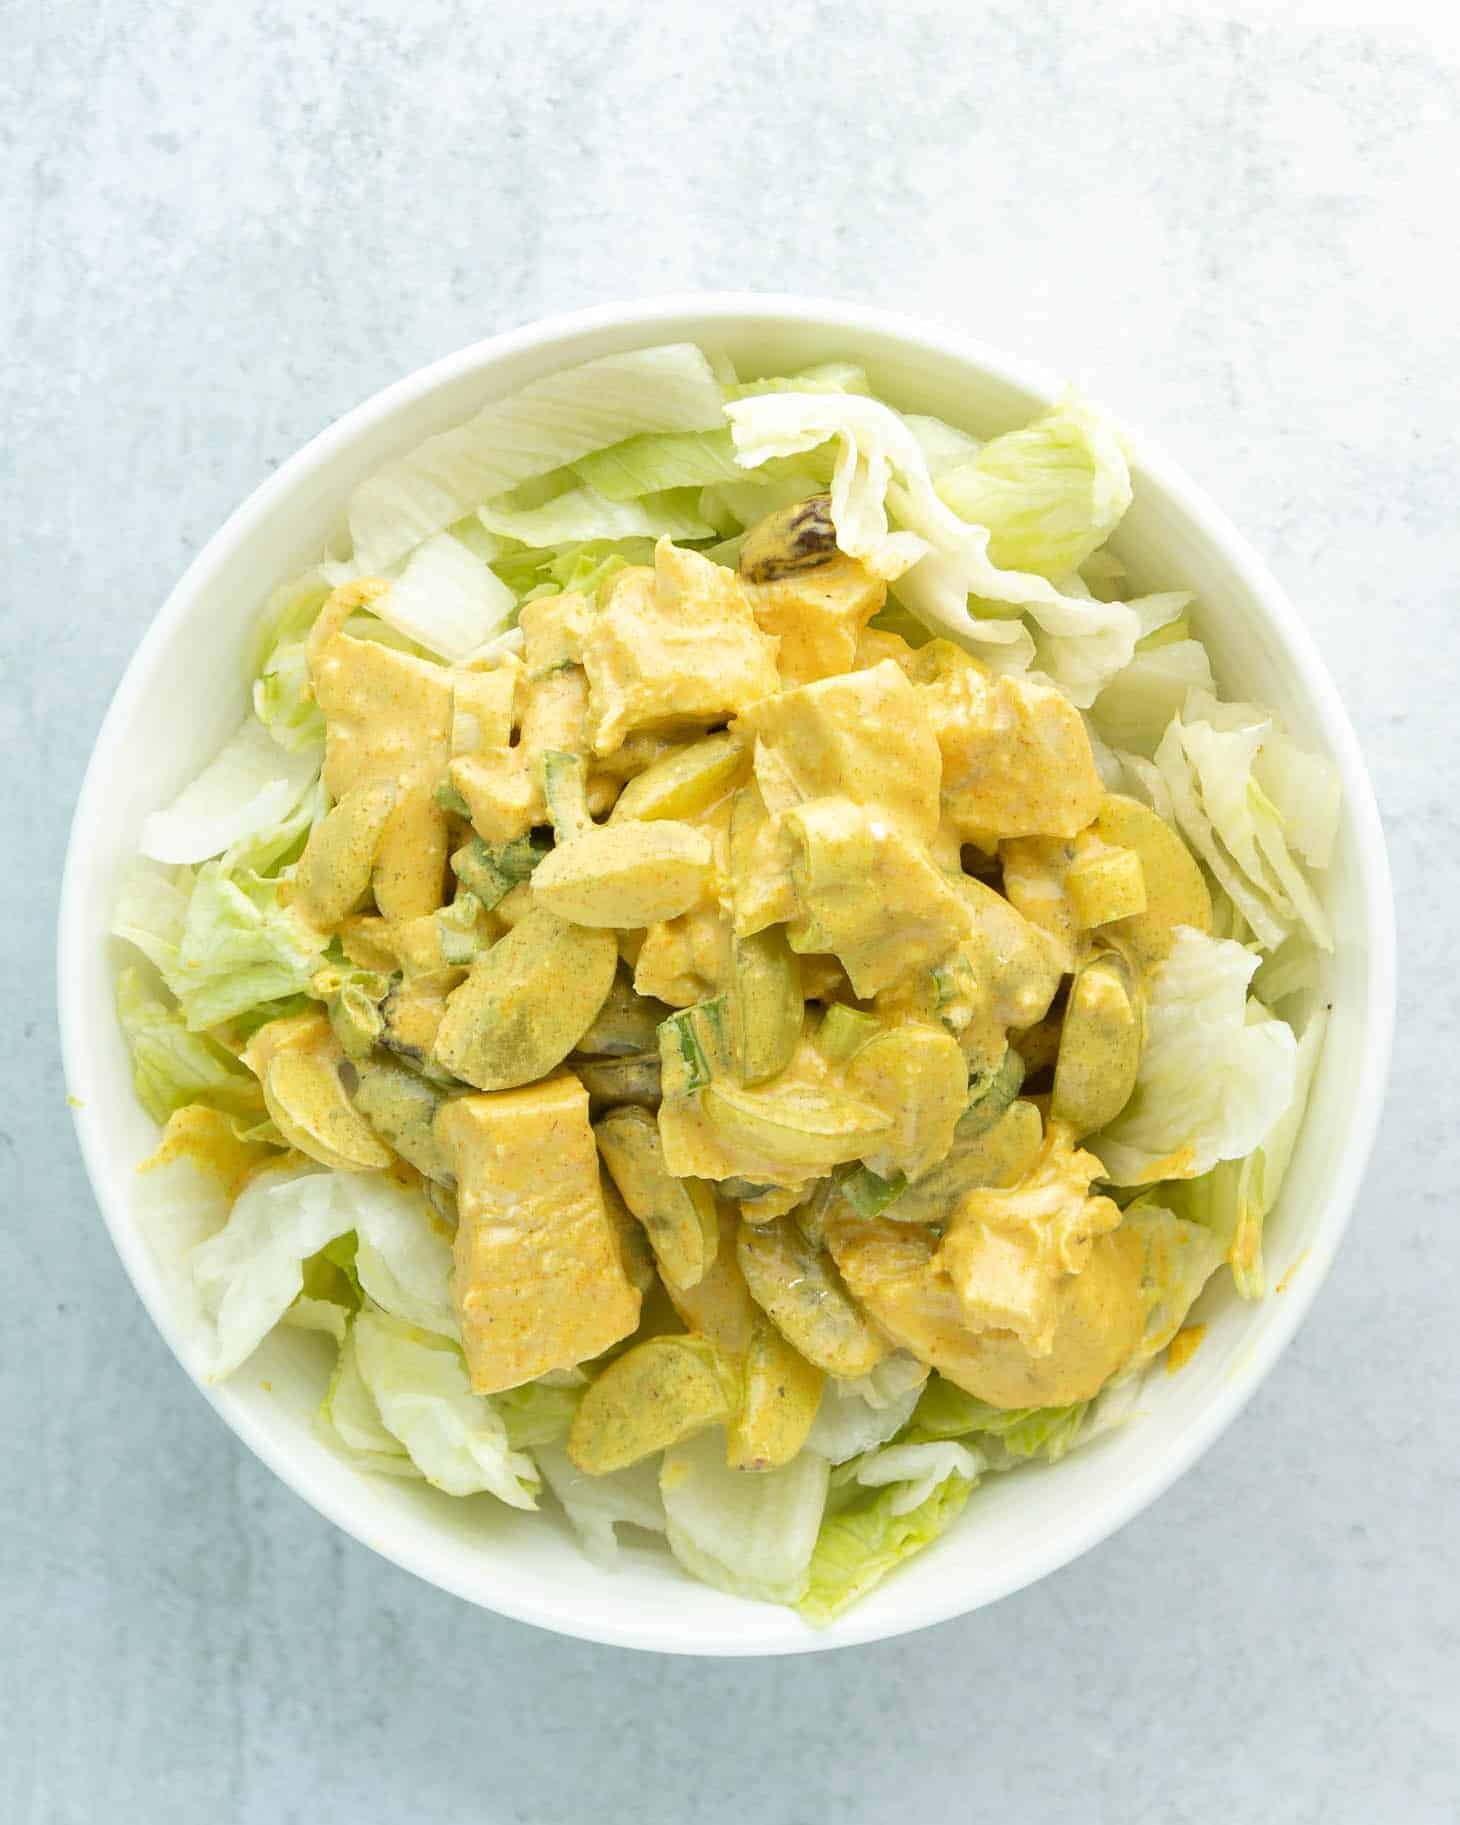 A bowl of curry chicken salad with grapes